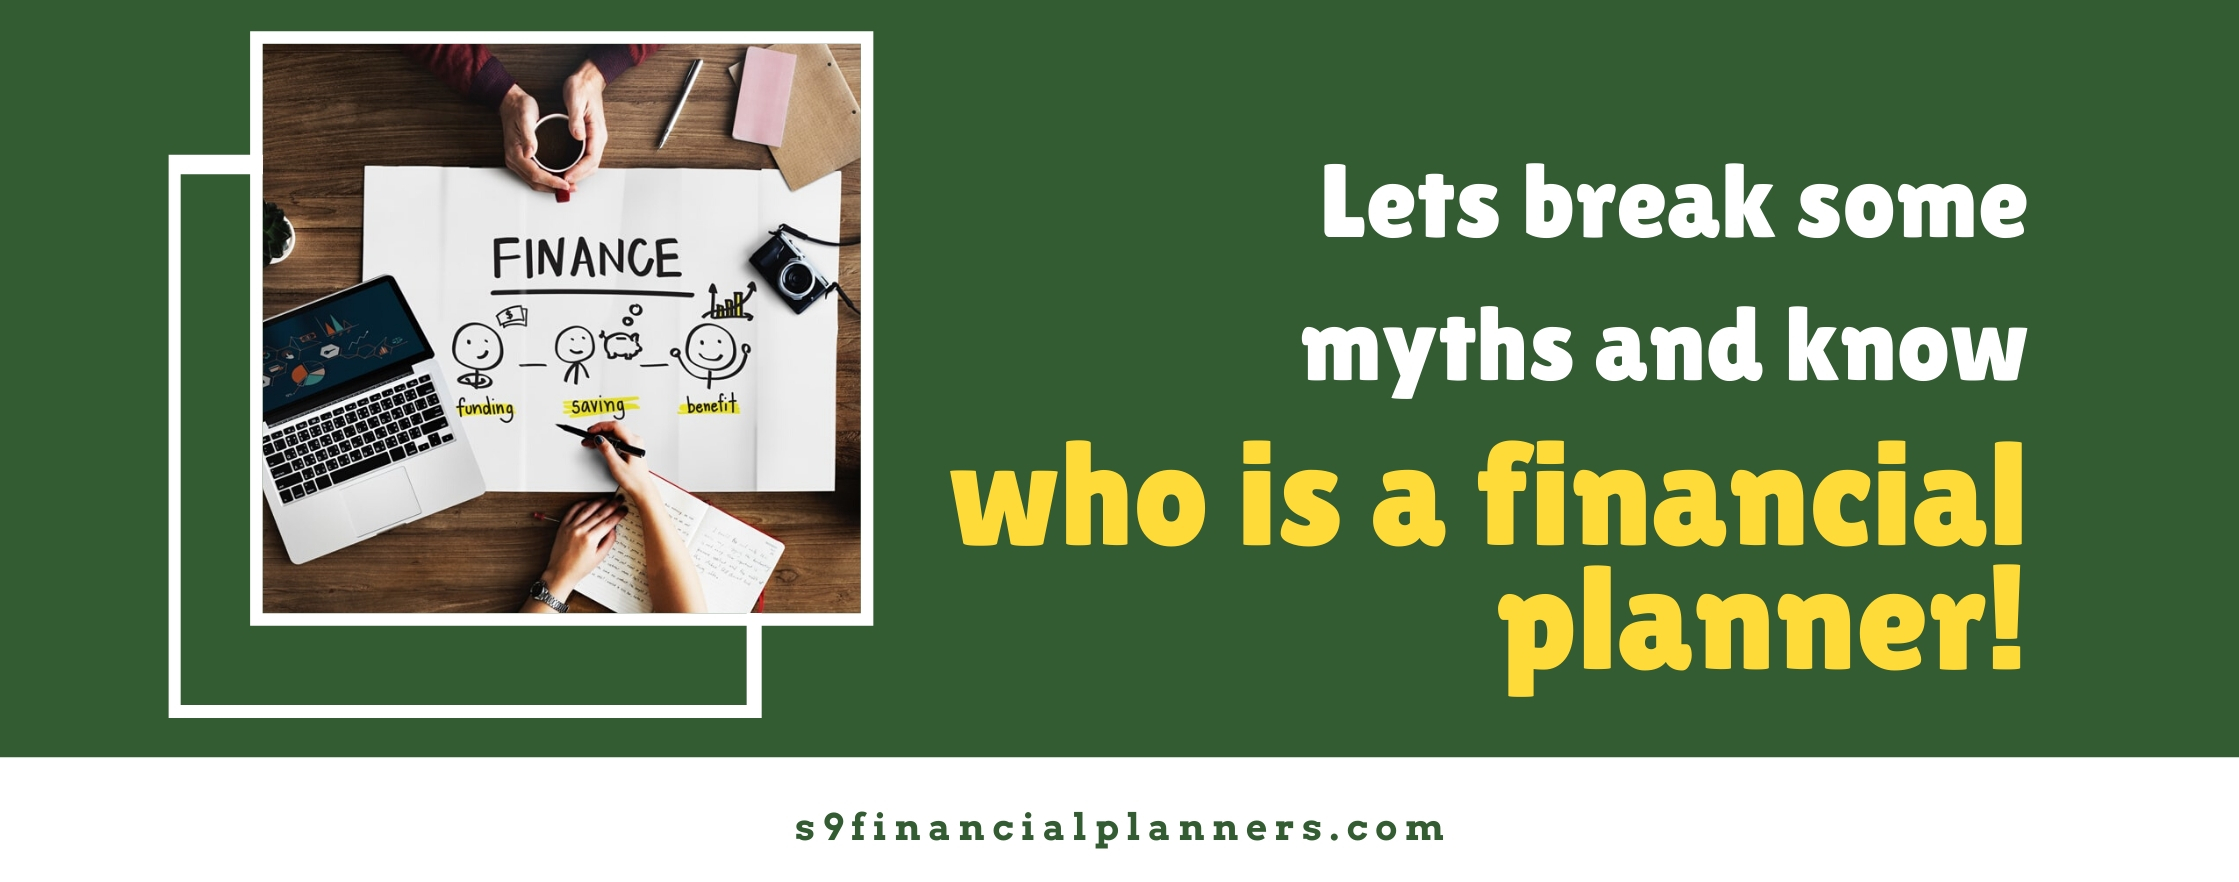 who-is-a-financial-planner